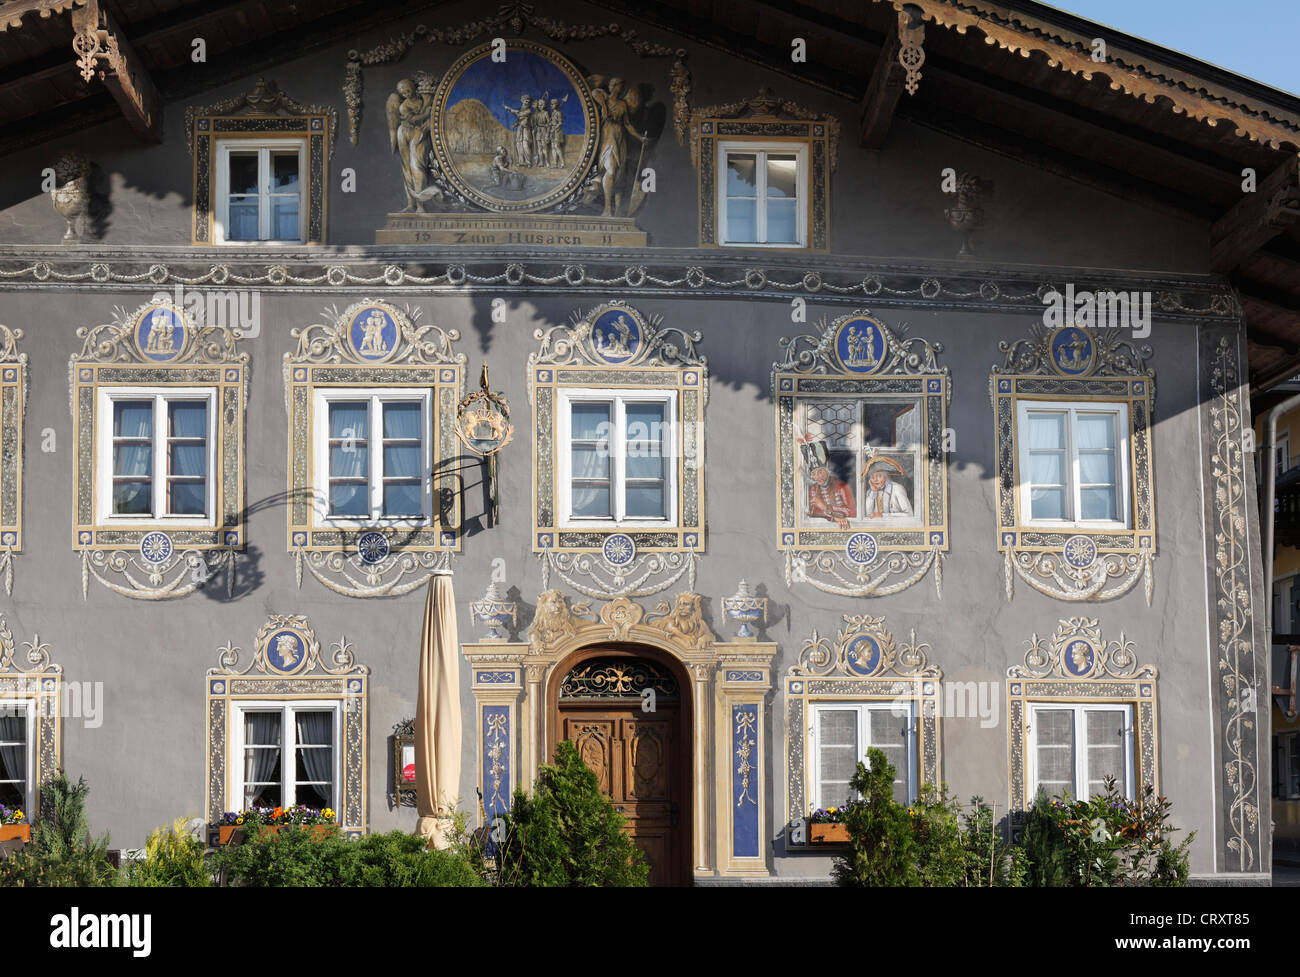 Germany, Bavaria, Garmisch-Partenkirchen, Painted windows of Husar Inn - Stock Image